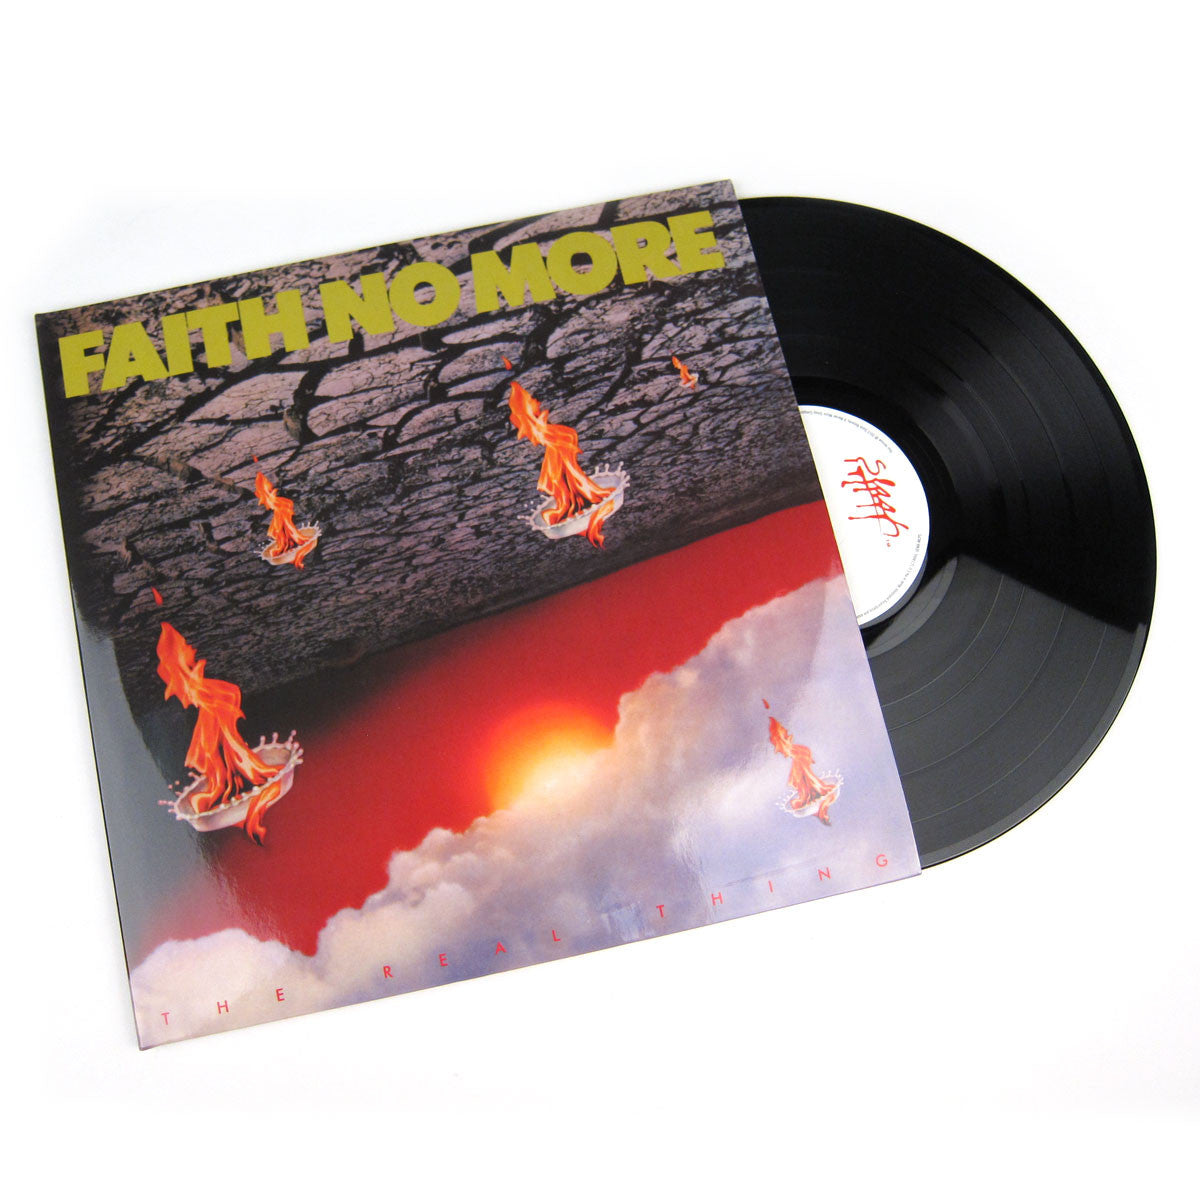 Faith No More: Deluxe Edition Vinyl LP Album Pack (The Real Thing, Angel Dust)